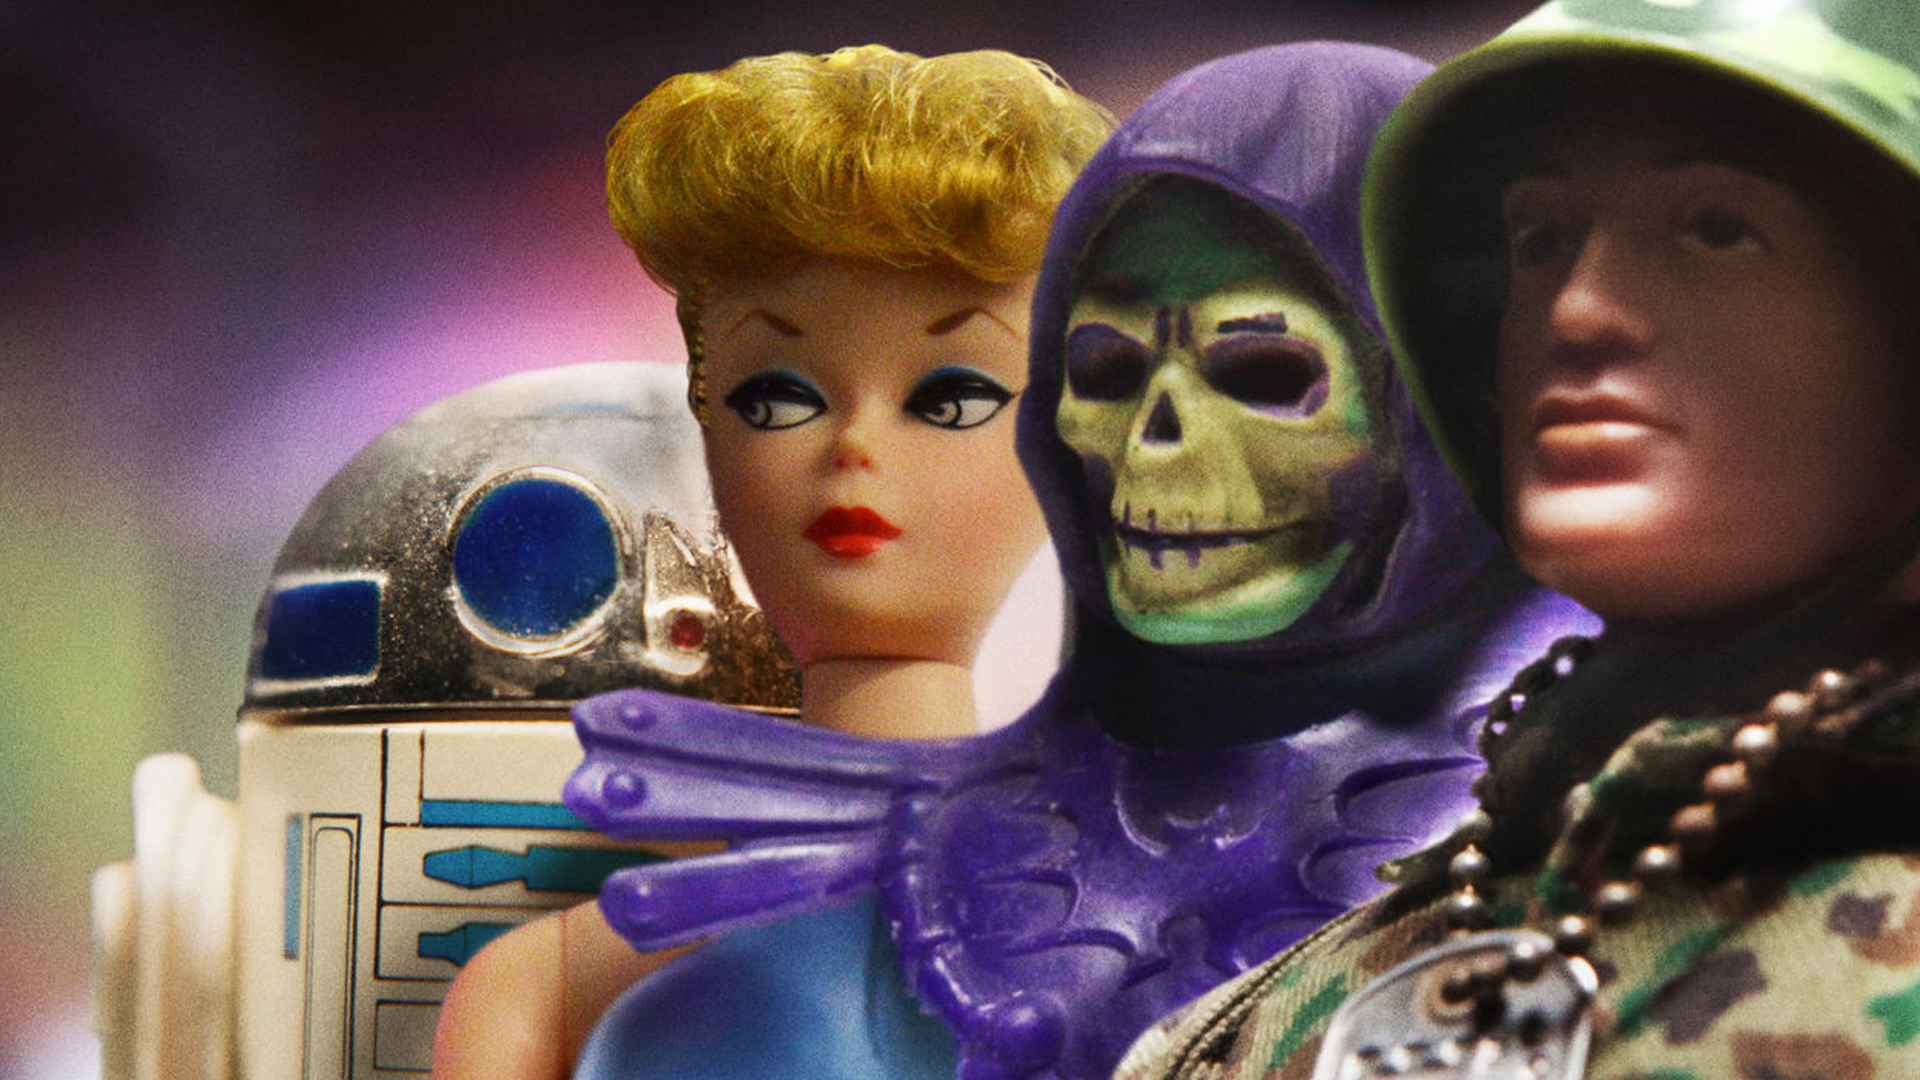 Brian Volk-Weiss Talks Netflix Nostalgia and The Toys That Made Us